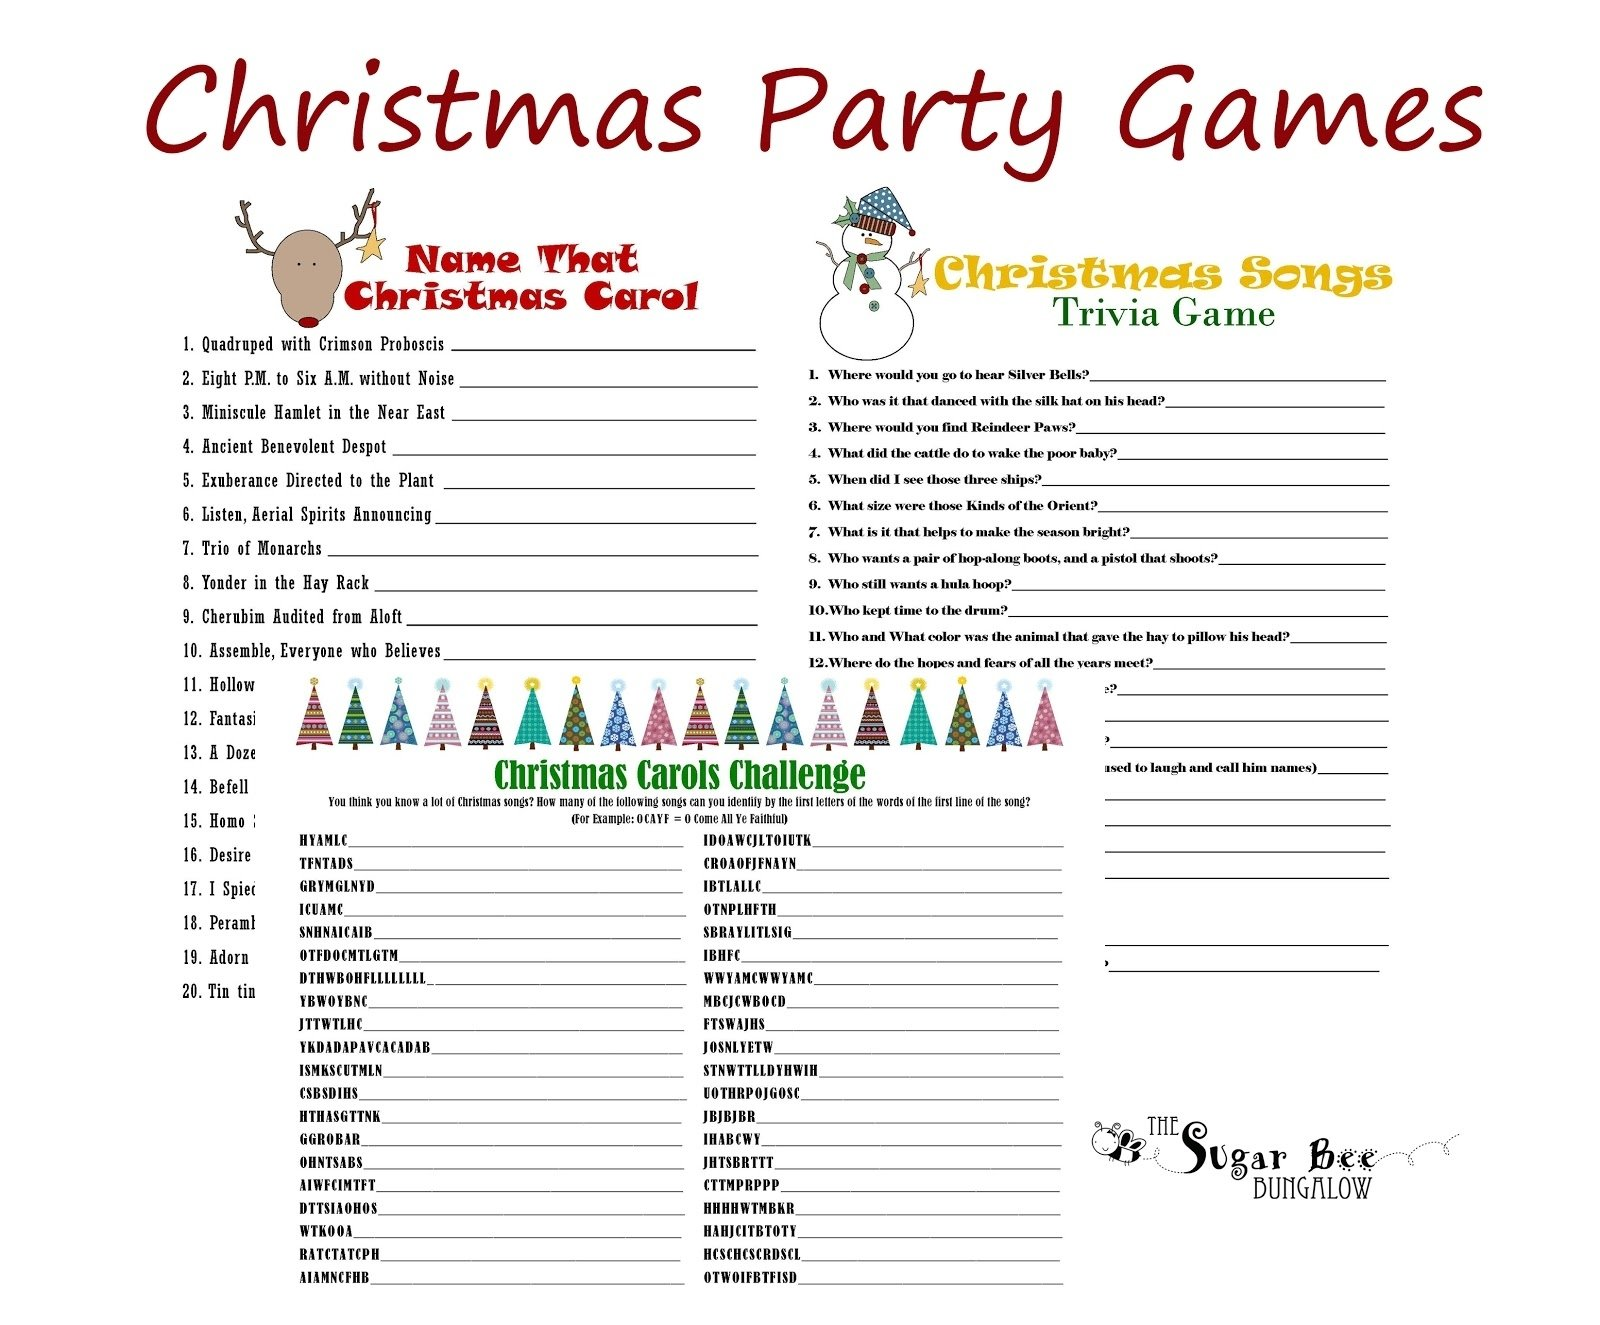 10 Stylish Christmas Party Ideas For Large Groups christmas party game ideas for large groups wedding 2021